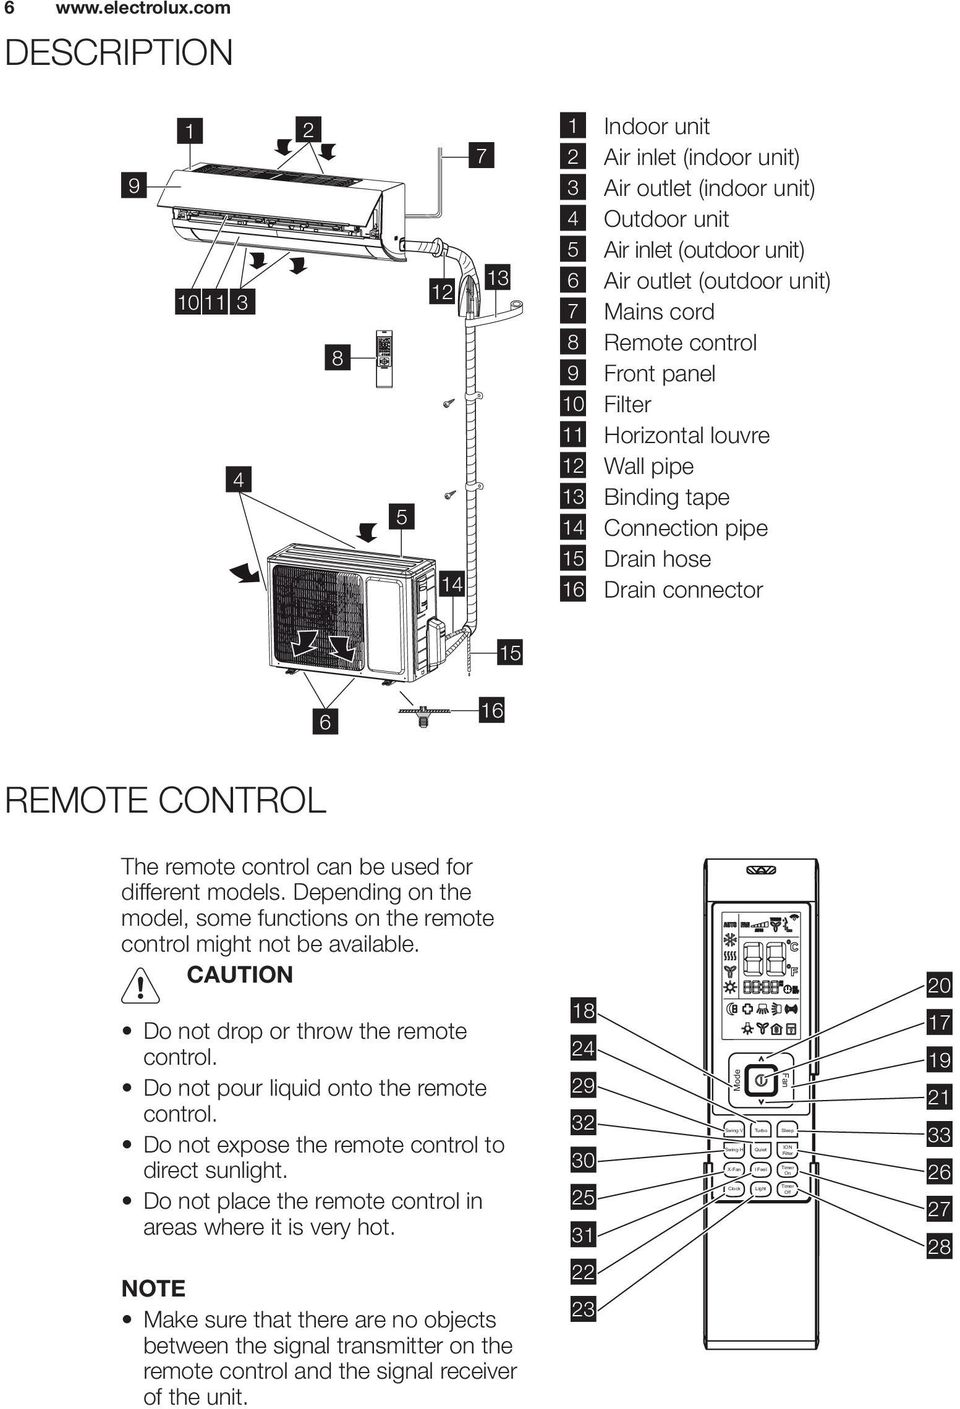 Remote control 9 Front panel 10 Filter 11 Horizontal louvre 12 Wall pipe 13 Binding tape 14 Connection pipe 15 Drain hose 16 Drain connector 15 6 16 REMOTE CONTROL The remote control can be used for